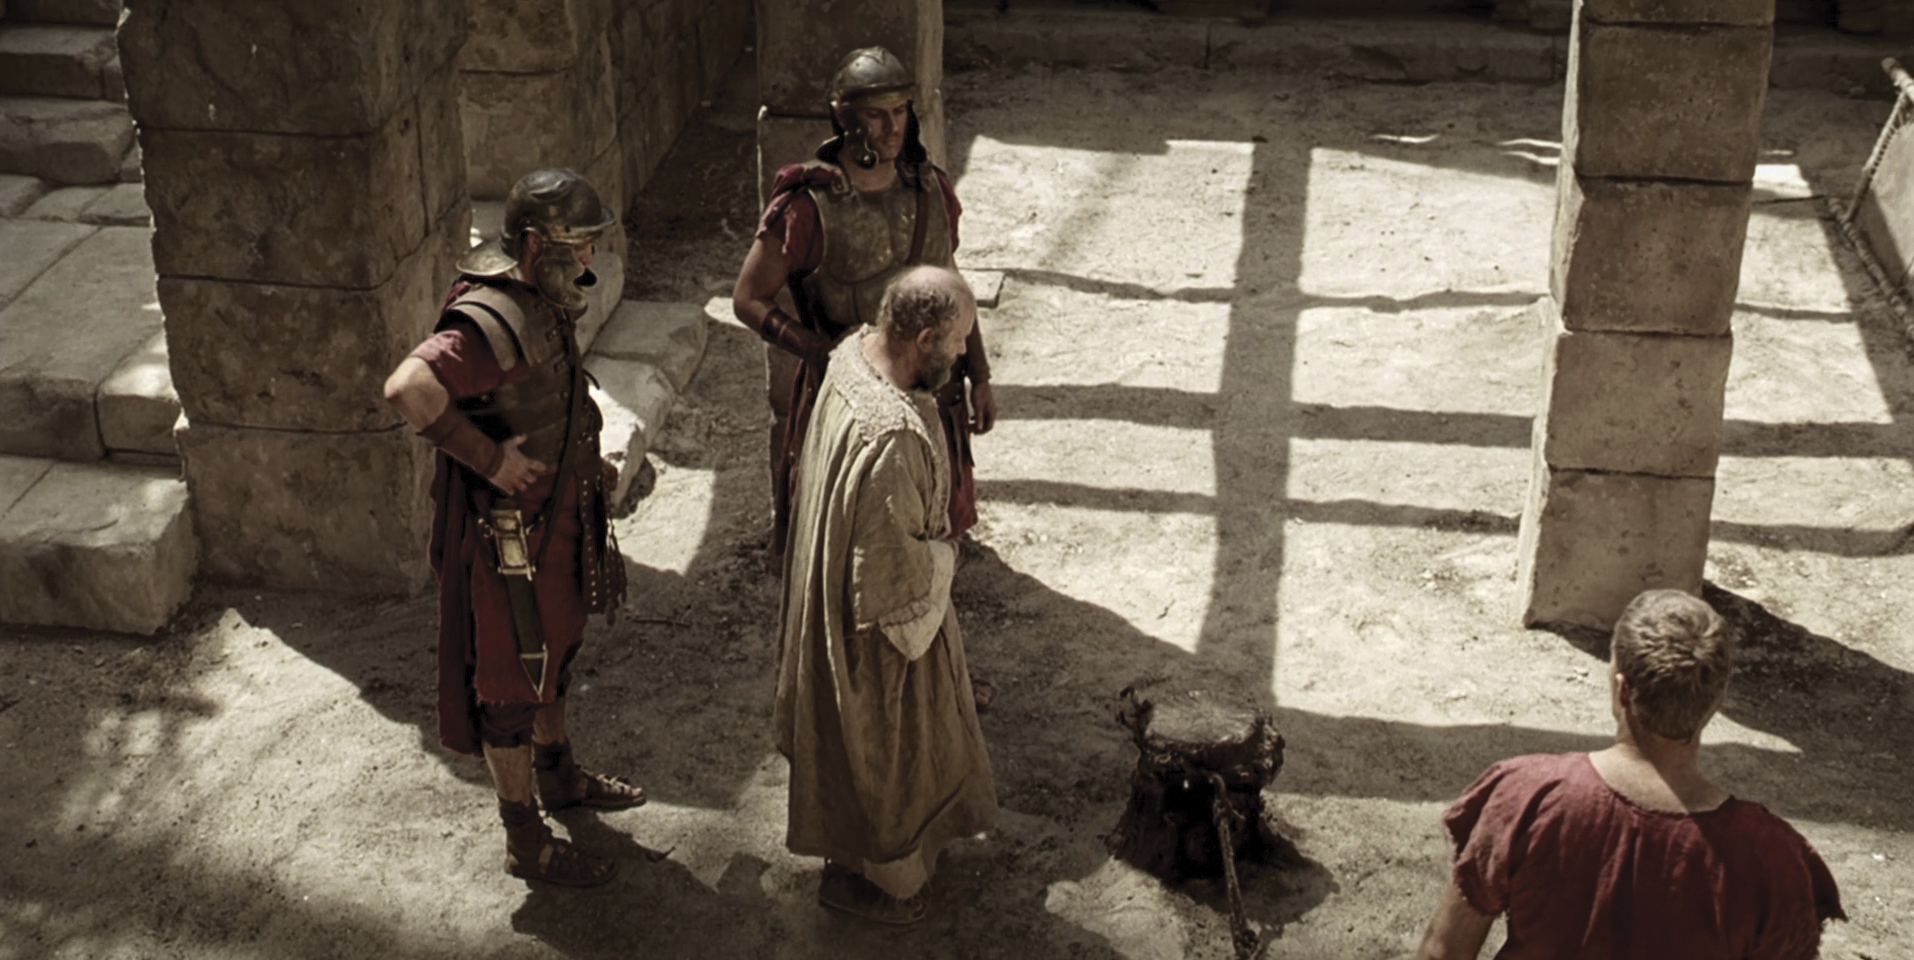 Paul is escorted to his execution.